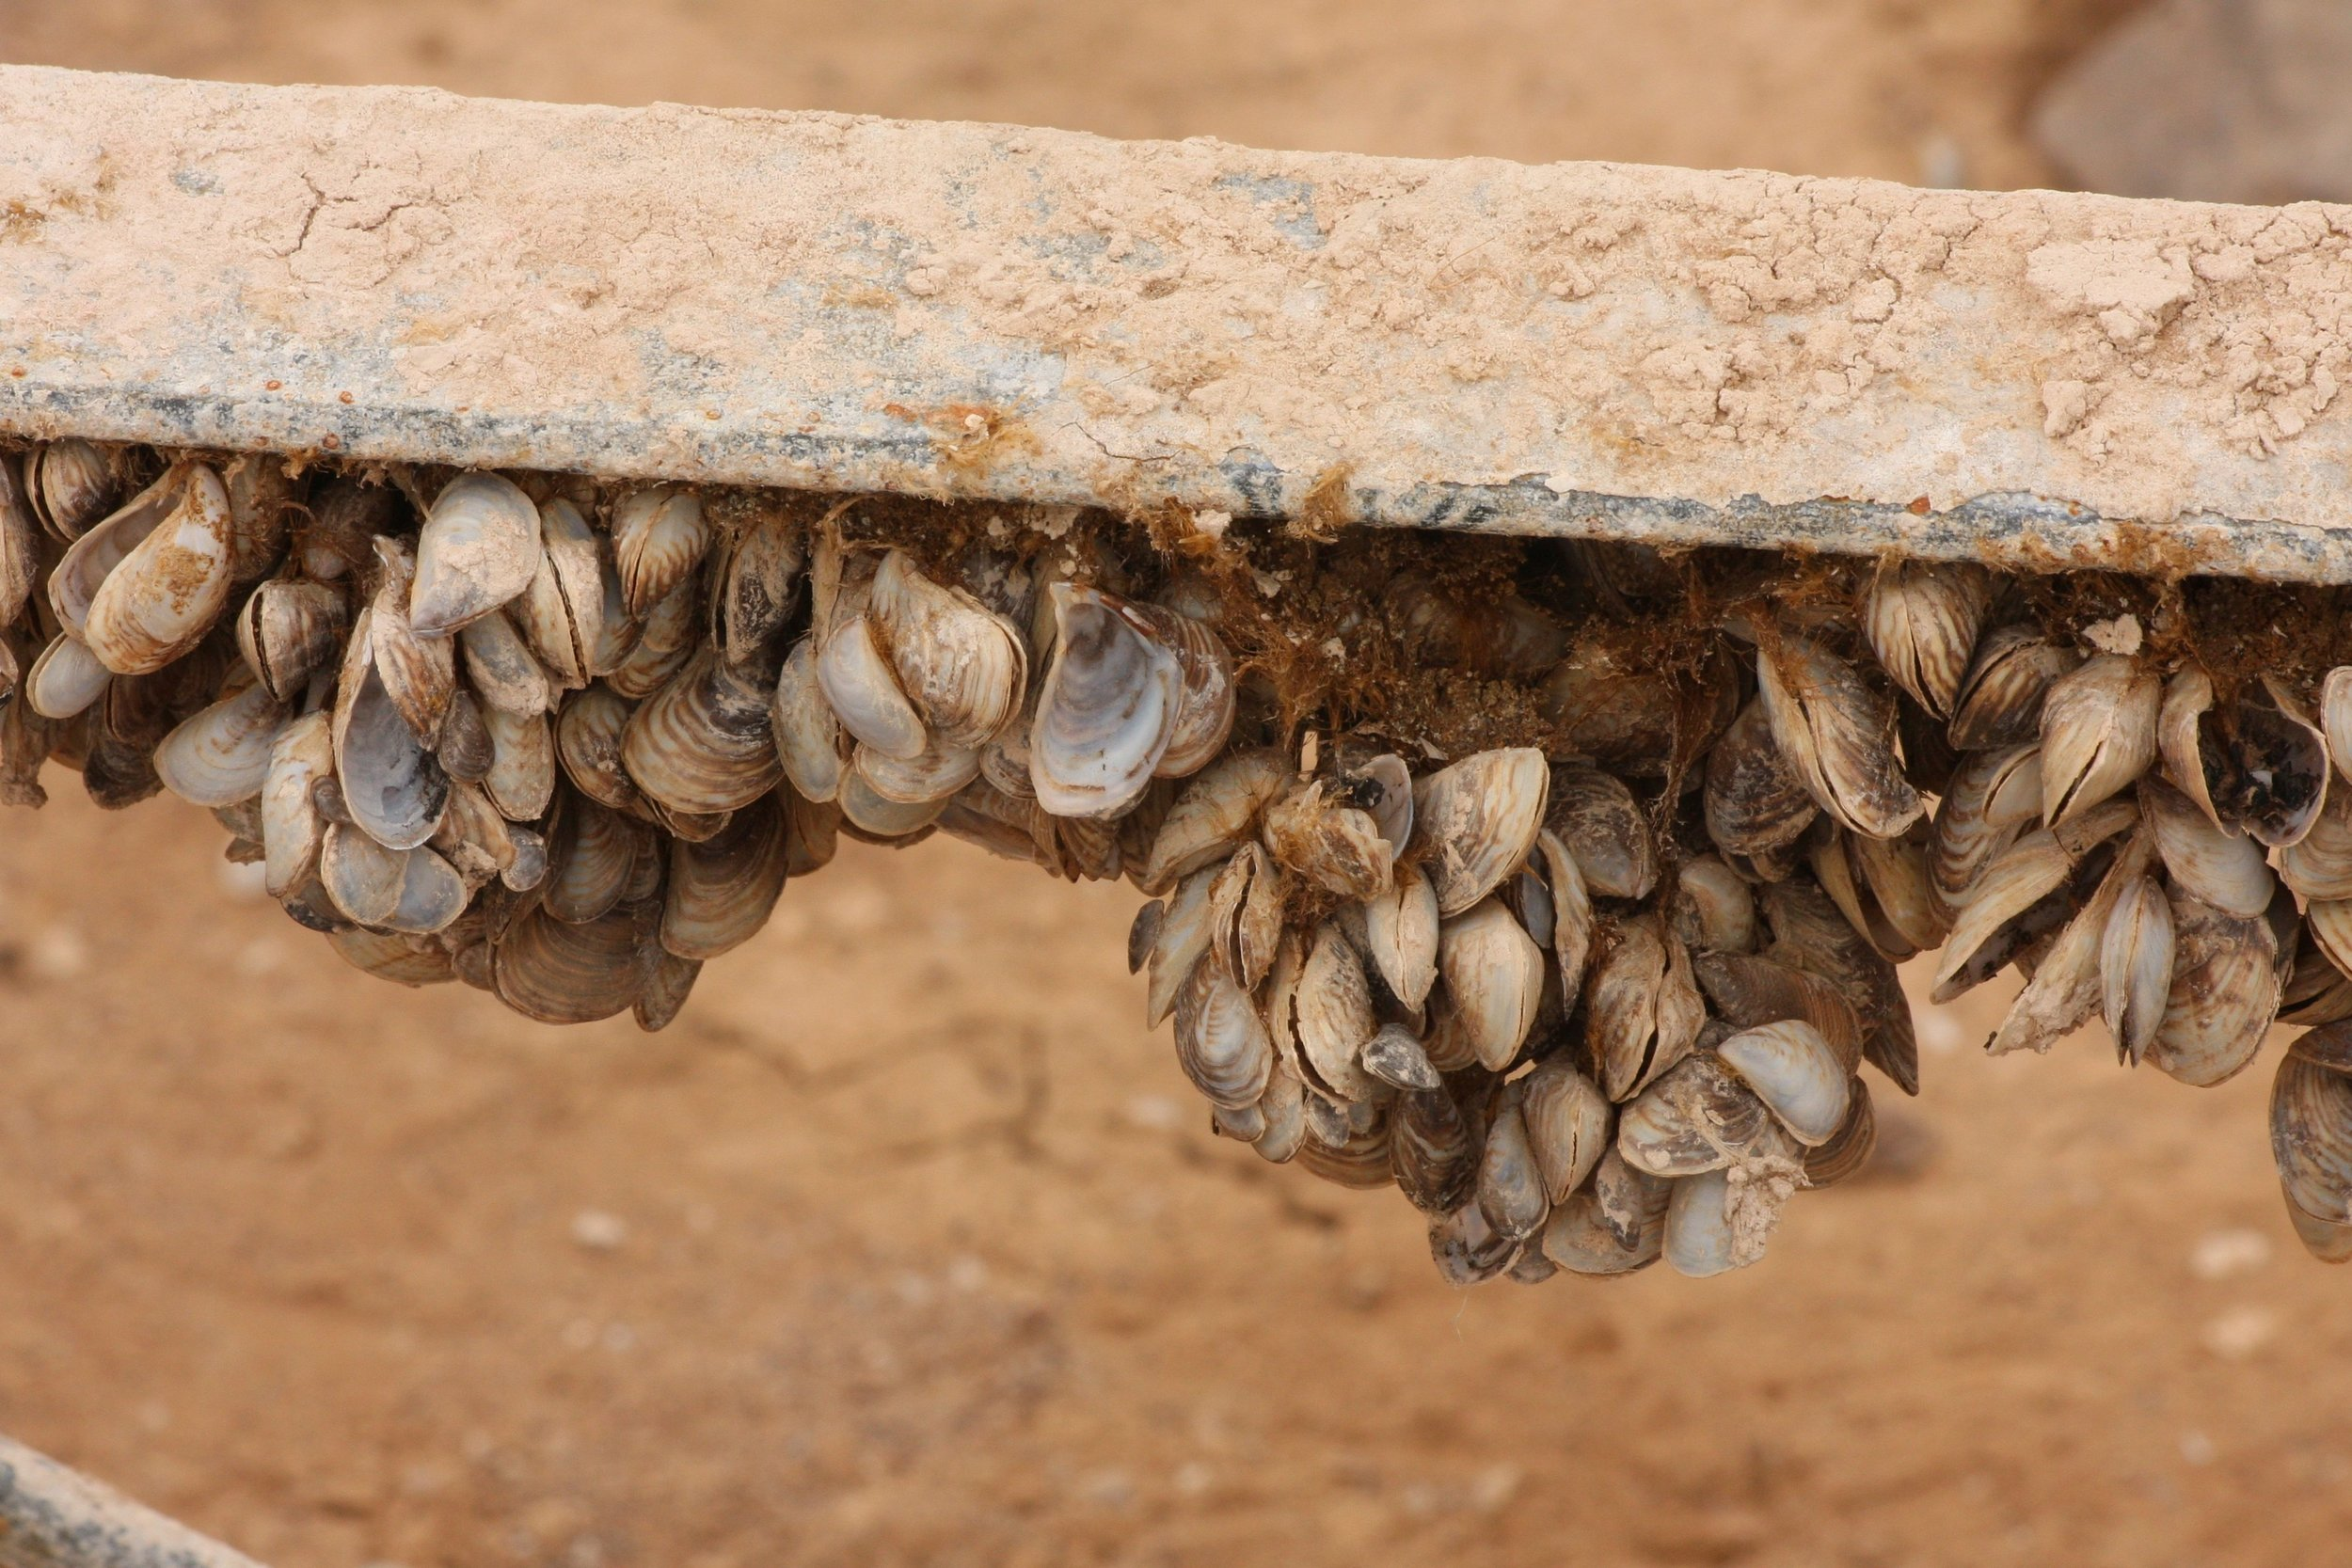 A maginified view of Quagga mussels on a marina support structure now above the waterline. Credit ©: J. N. Stuart via Flickr.